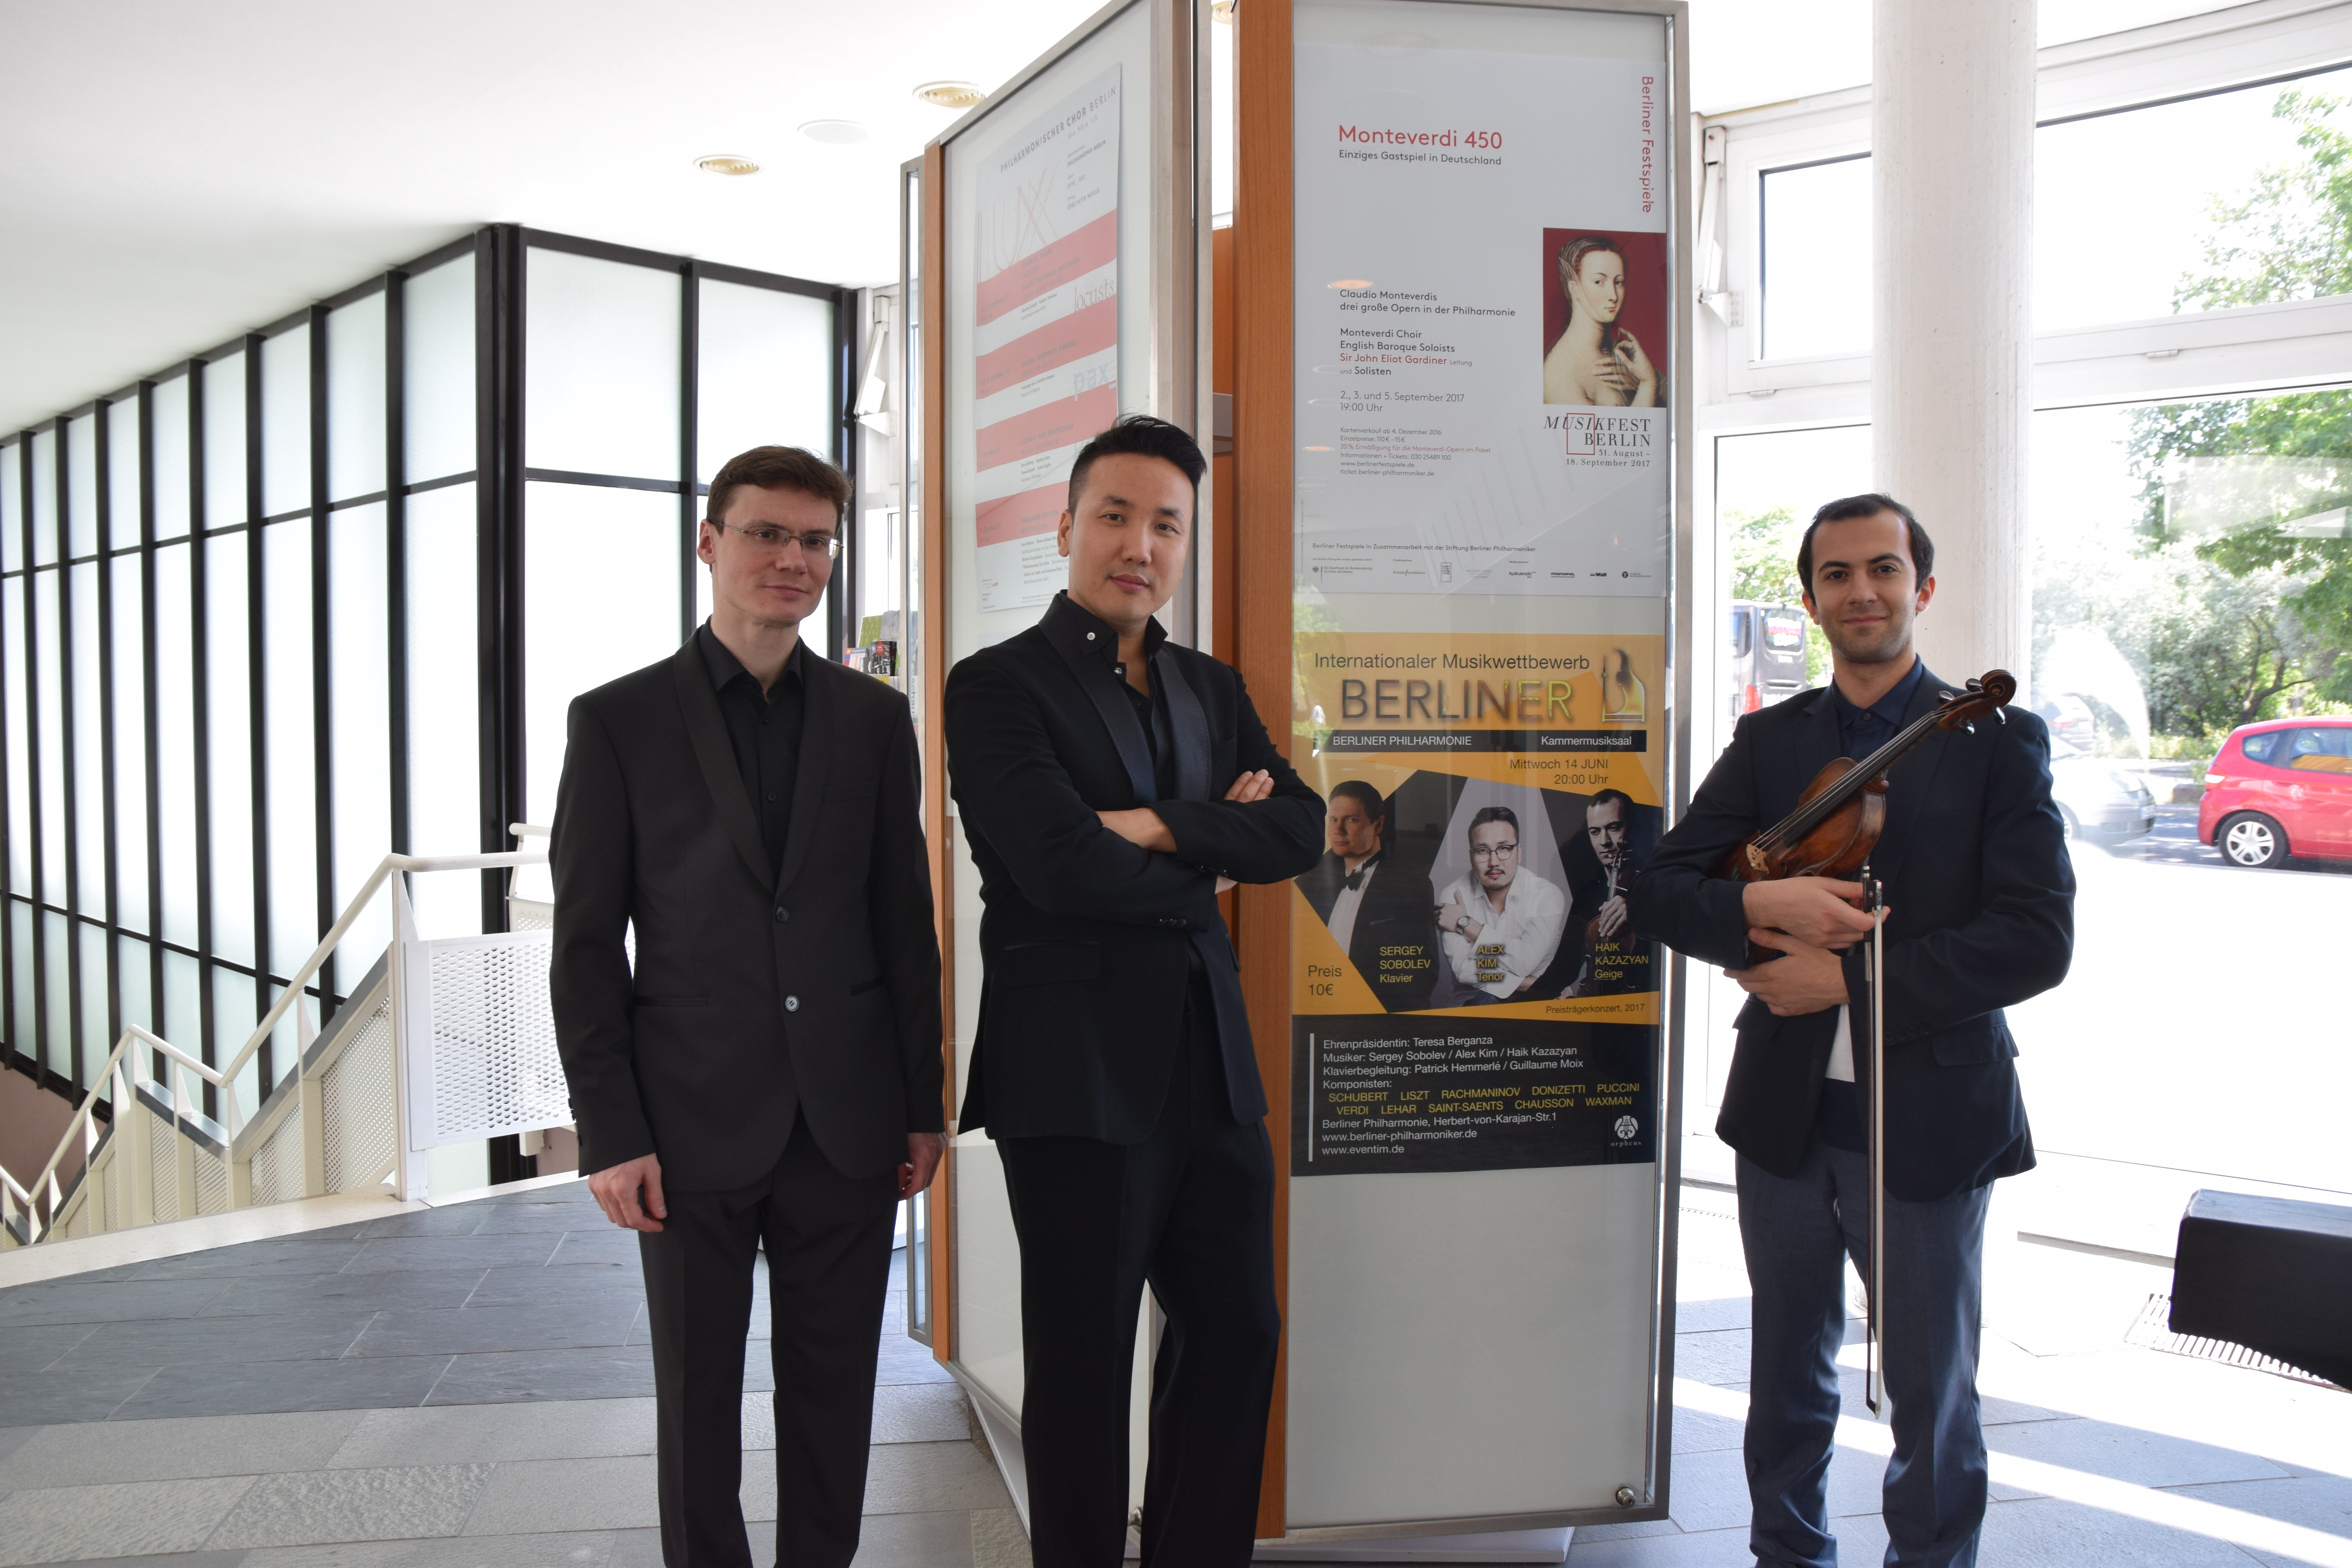 berliner music competition 58